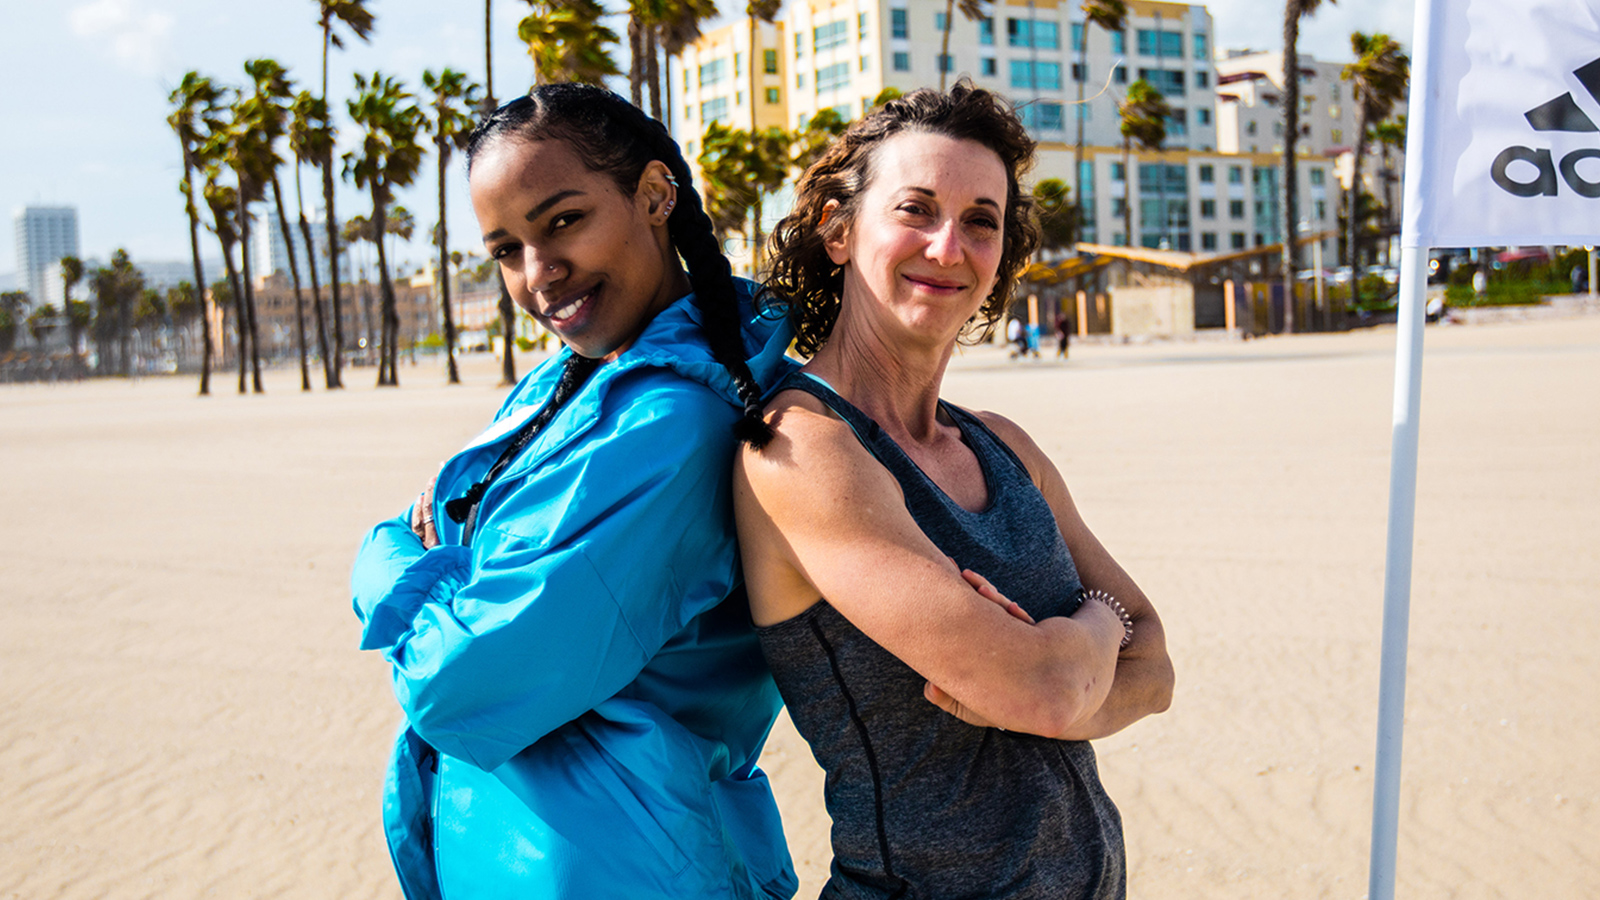 Two smiling women lean back to back, arms crossed, on a beach.